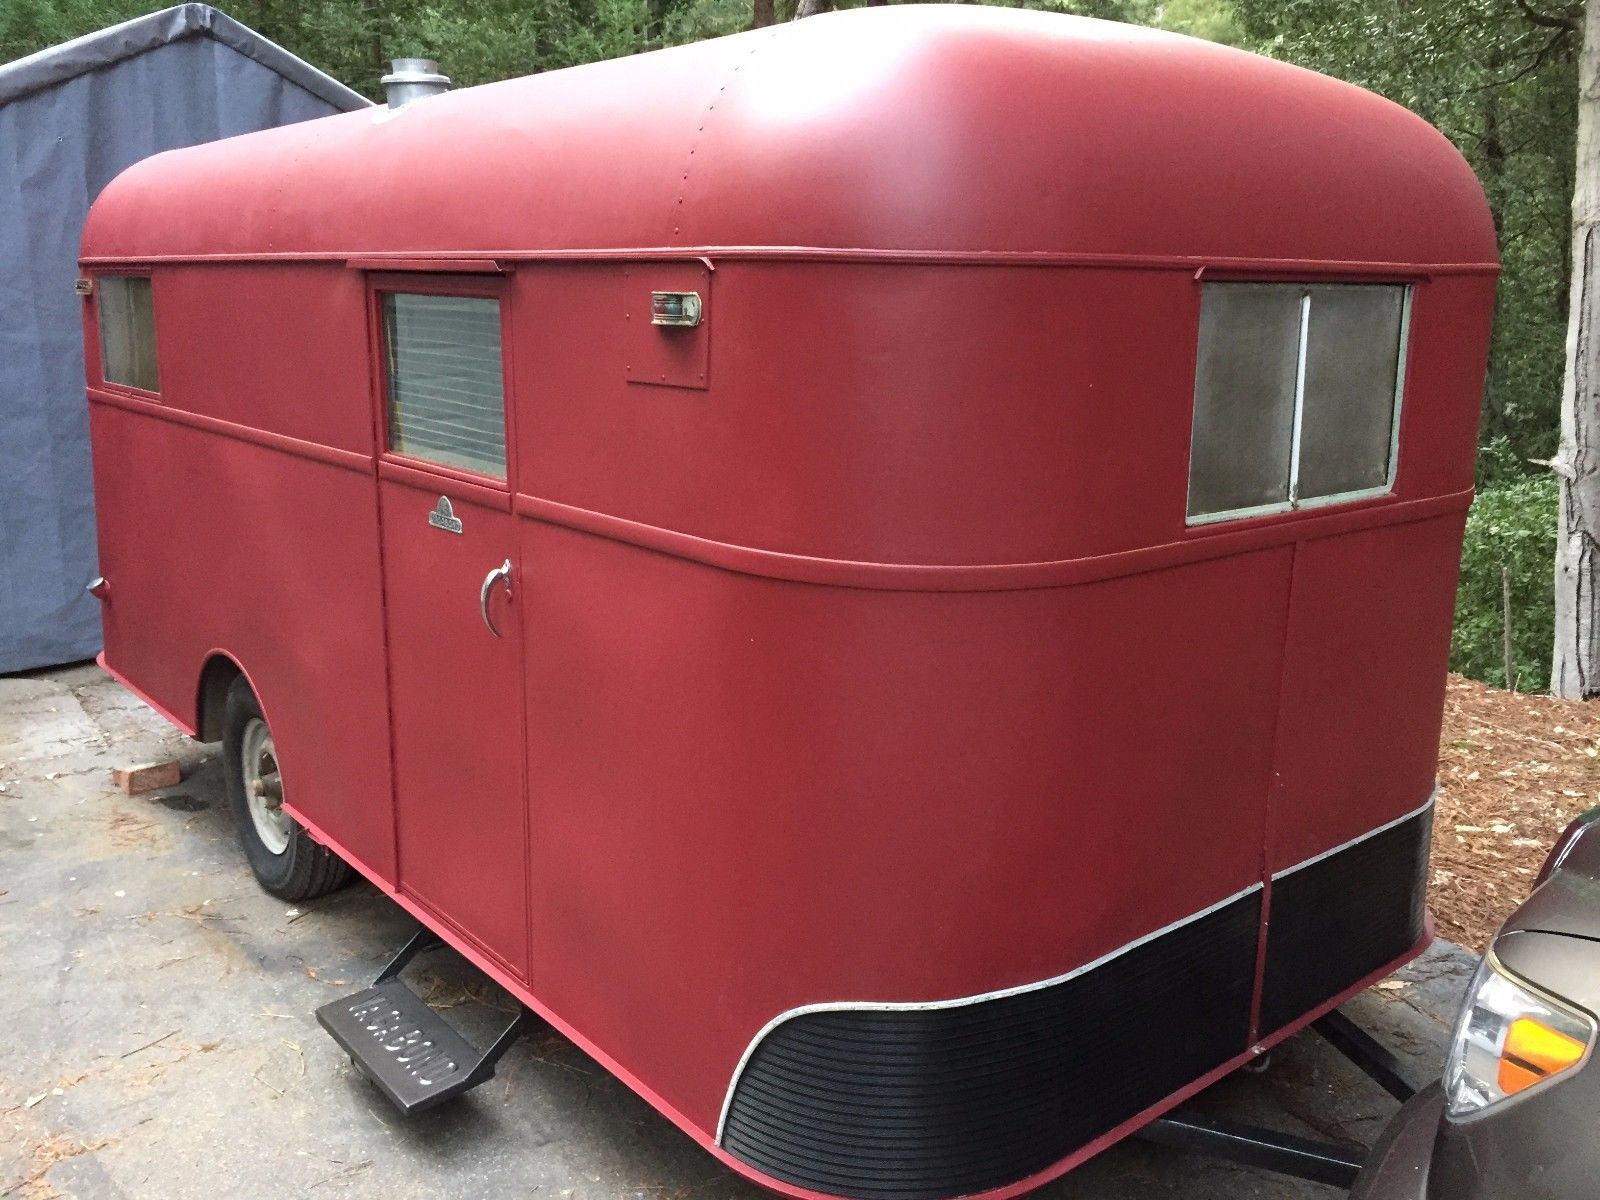 Vintage Vagaboond Model Camper For Sale